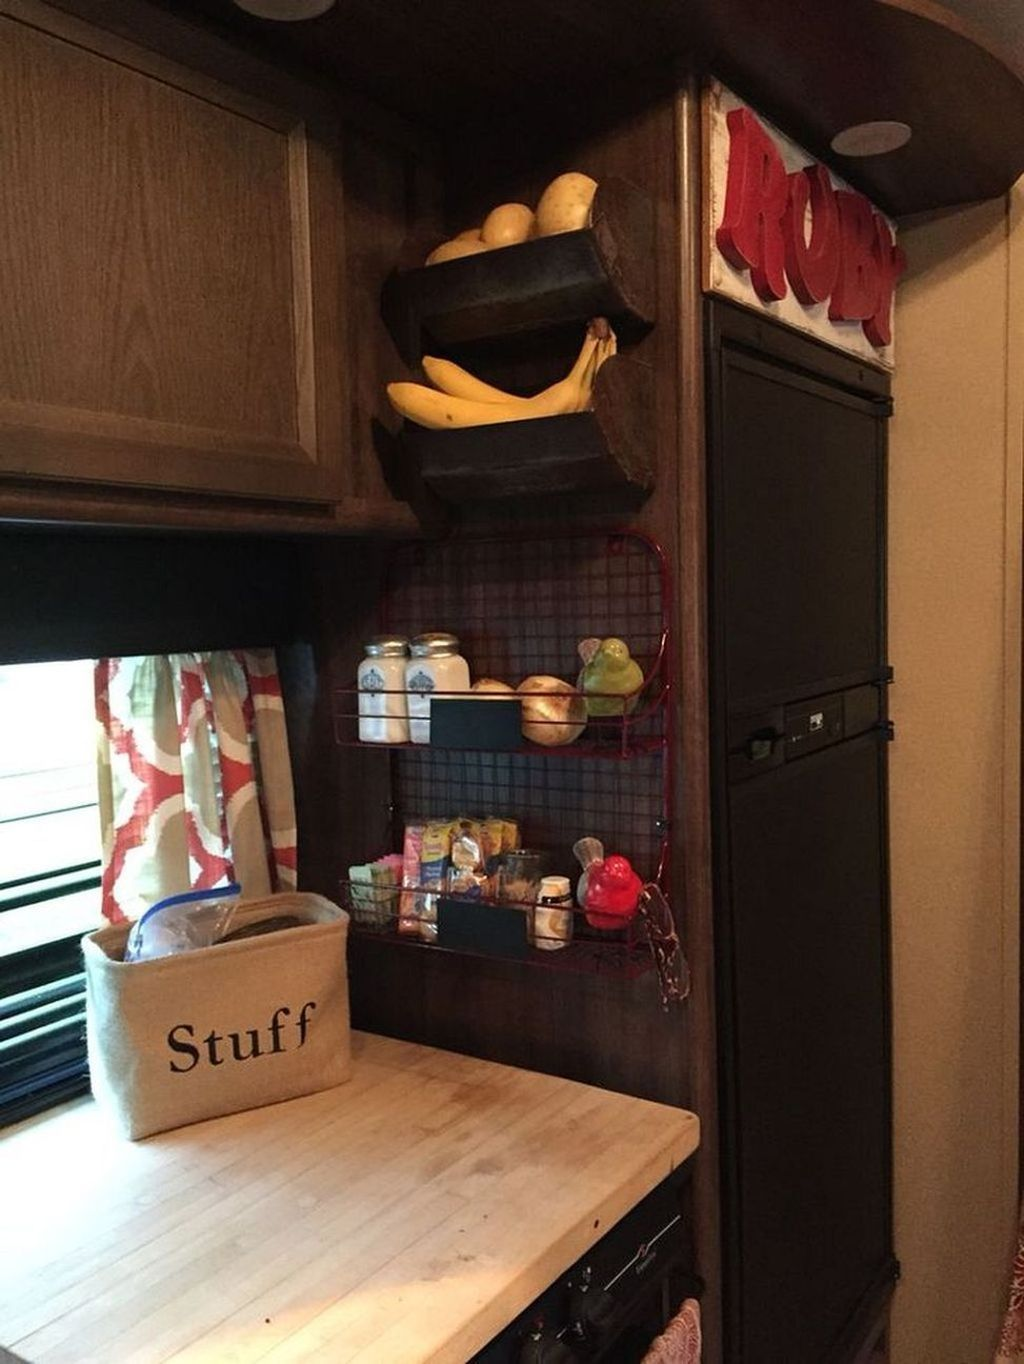 40+ Trendy Rv Storage Solutions Ideas That You Need To See #storagesolutions